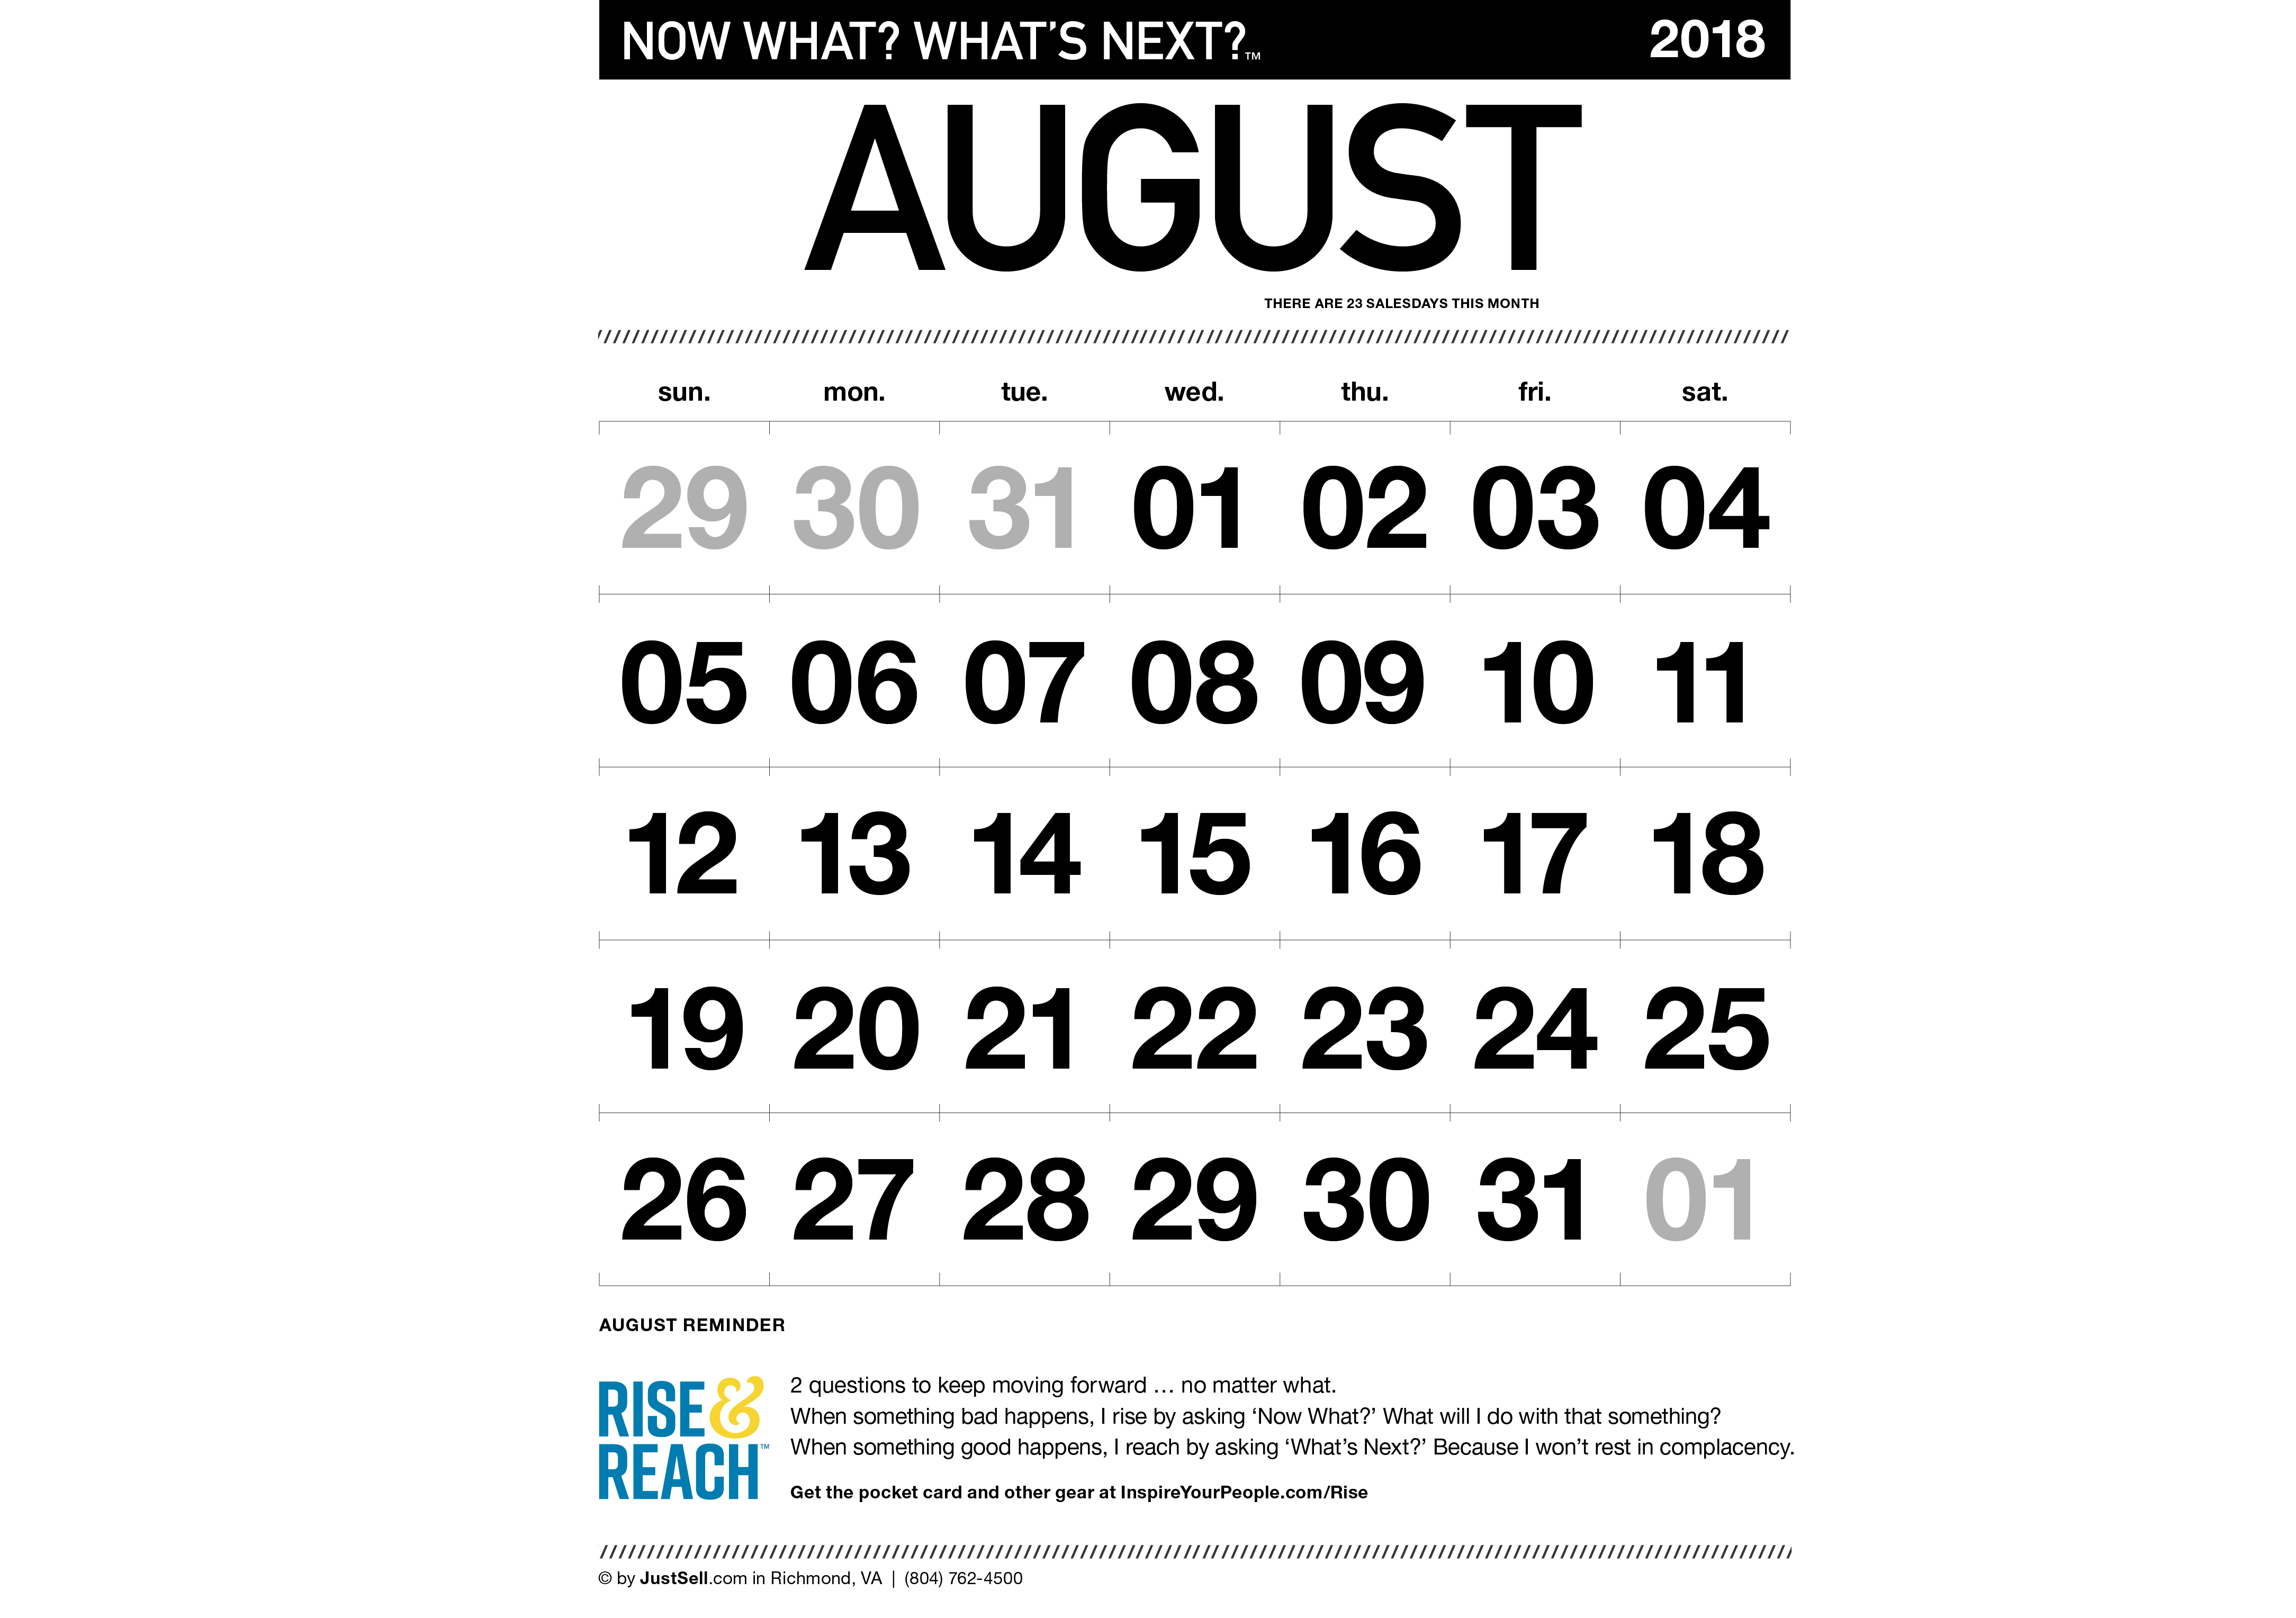 JustSell.com Monthly Calendar August 2018